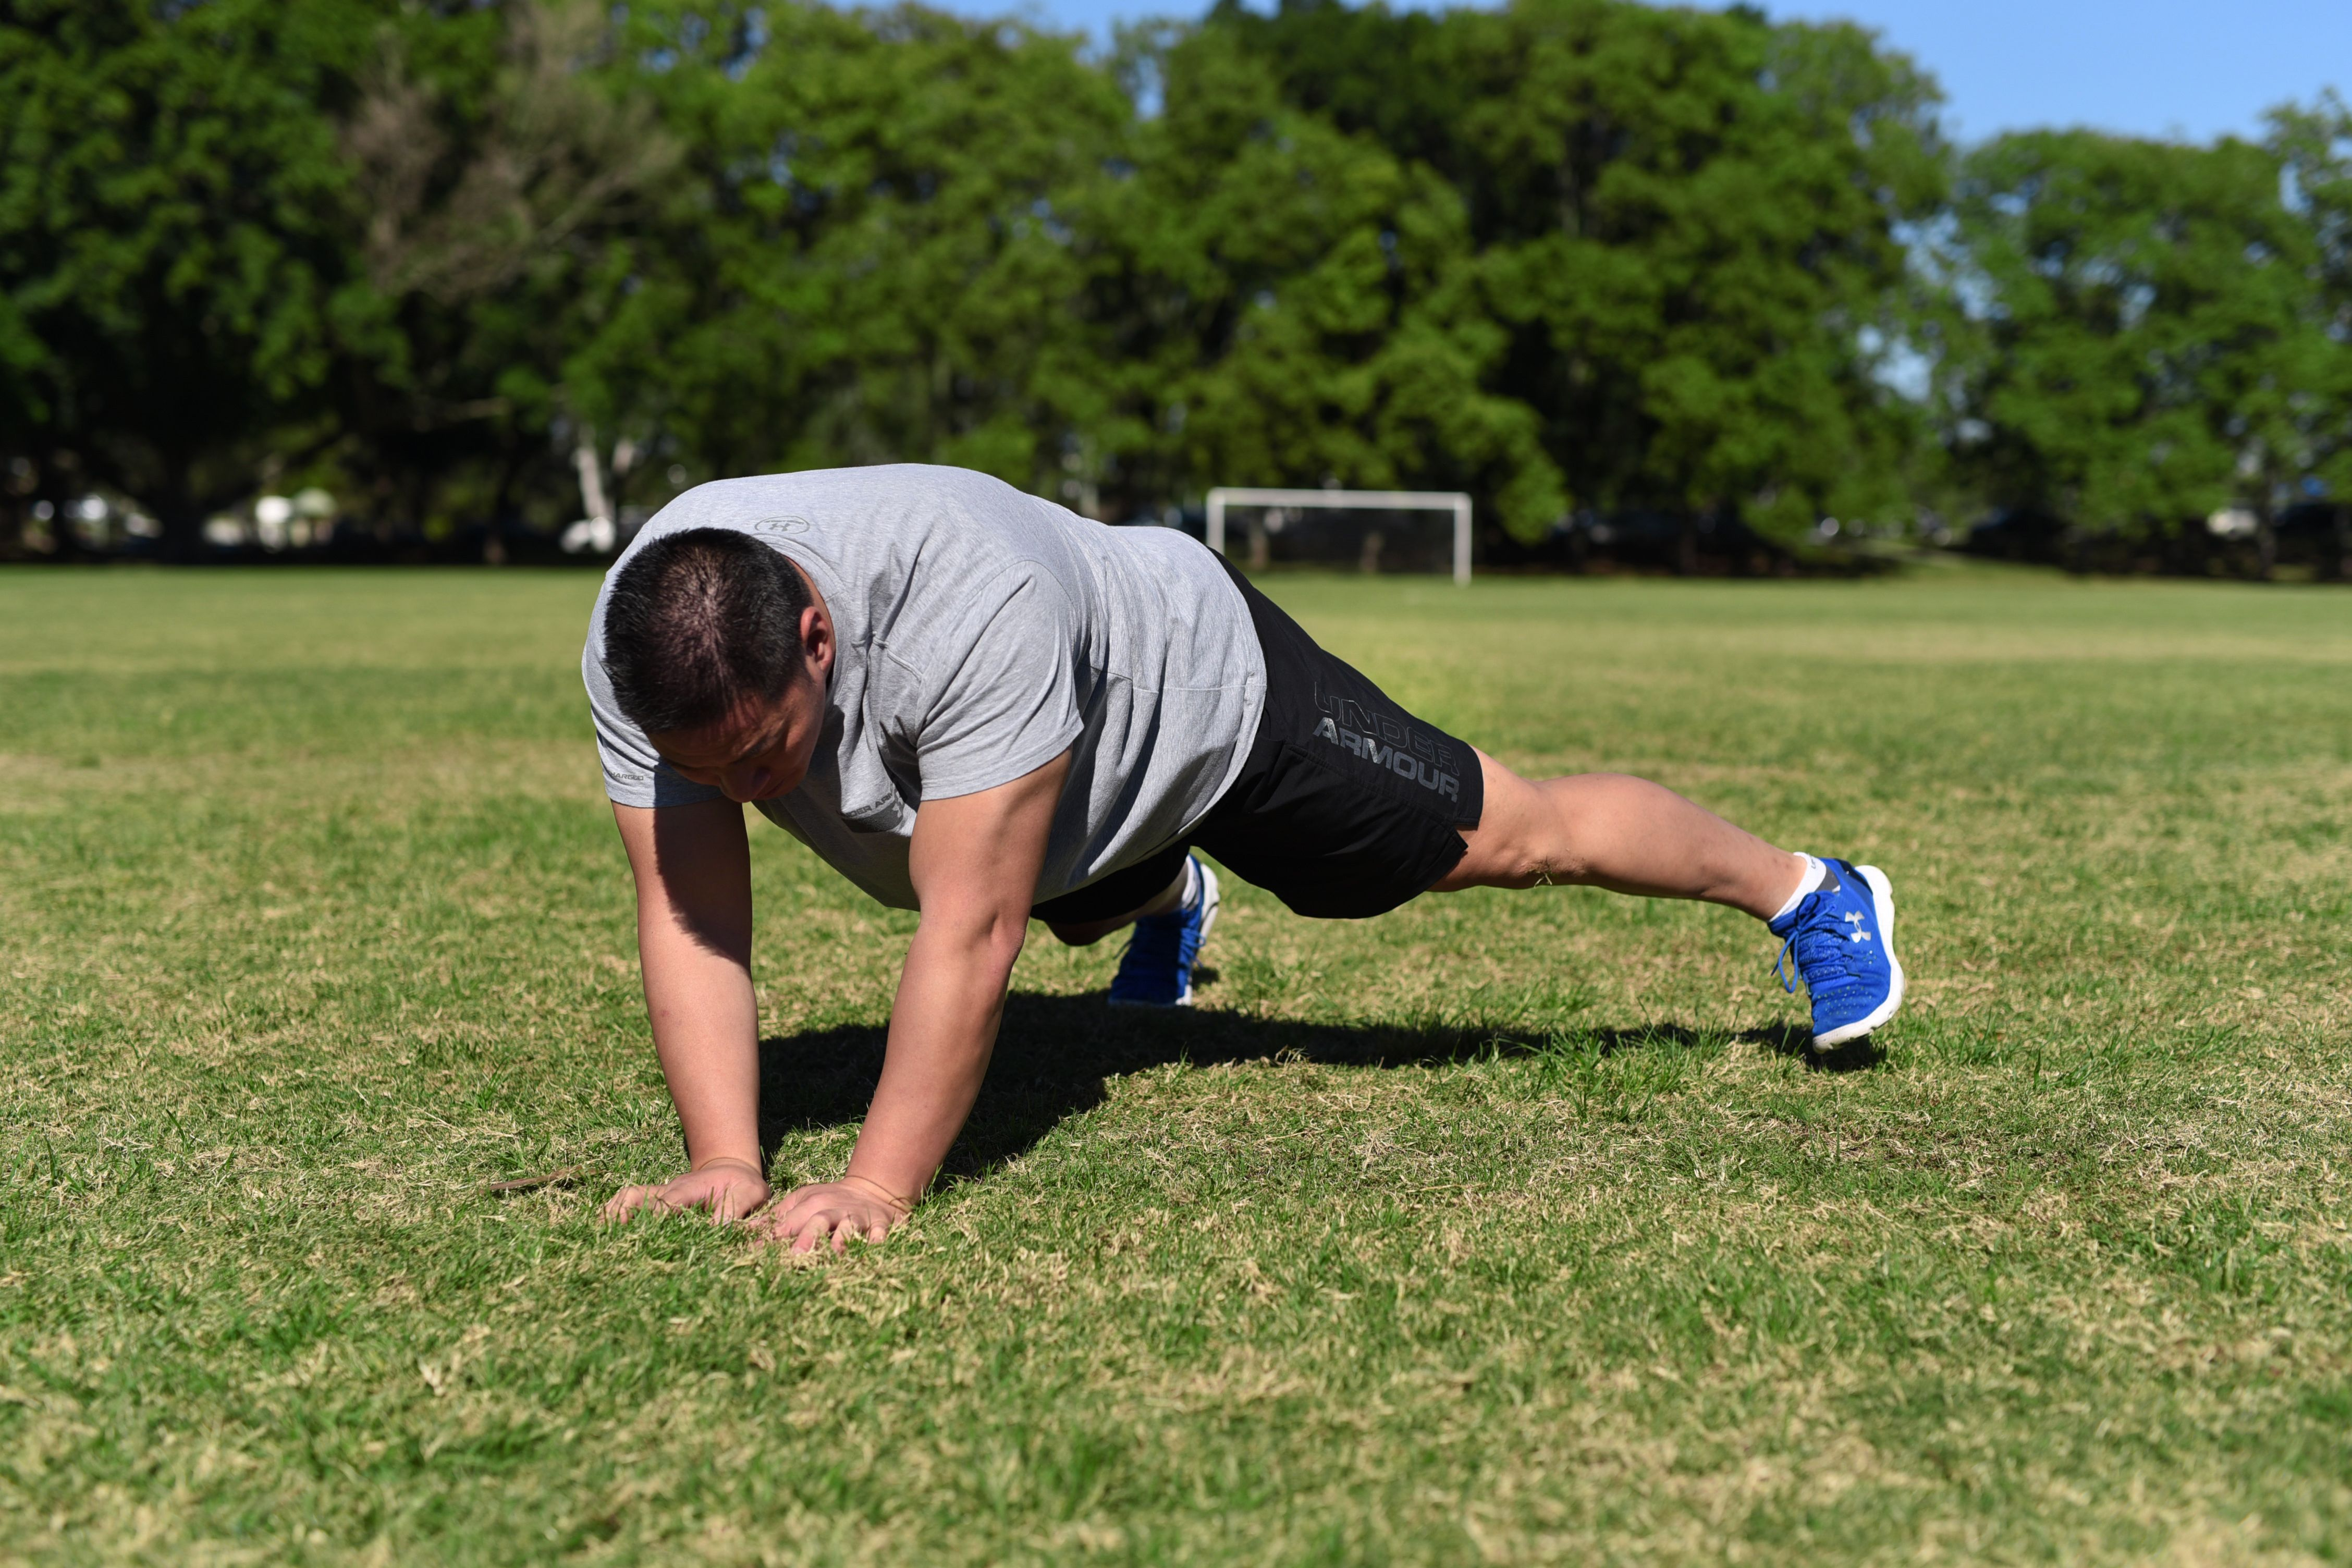 Walking Push Up. Step Three: Push back up from the ground, move one hand and foot to in one direction followed by the other hand and foot.